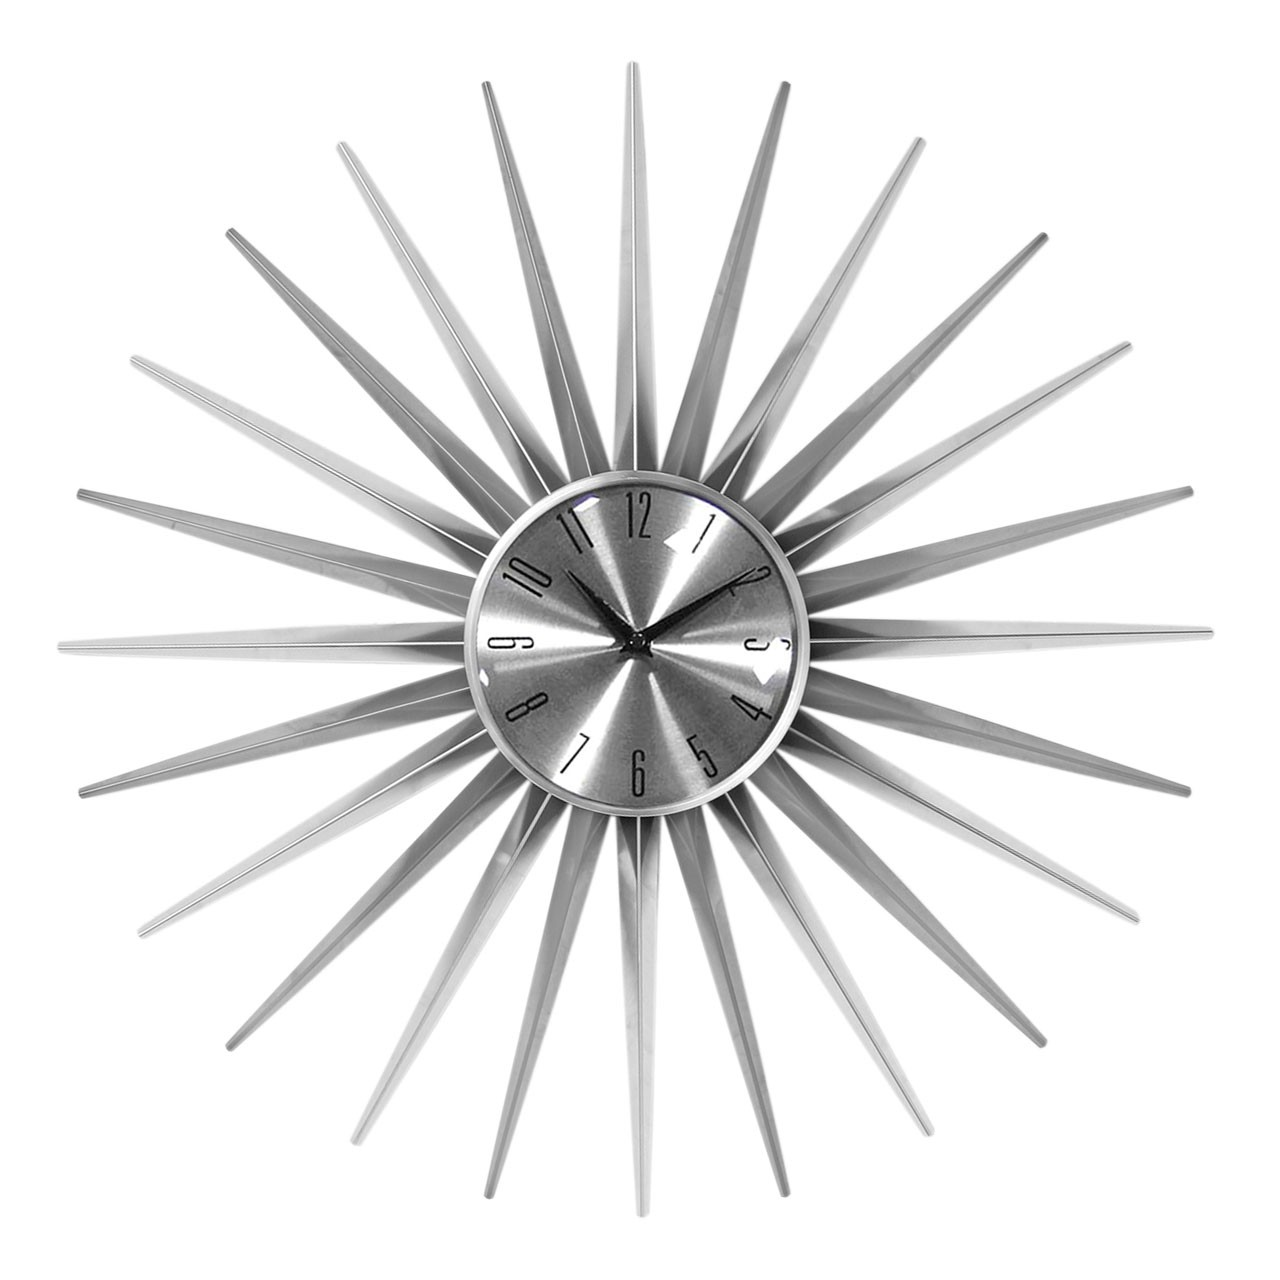 Wall Clock, Sunburst, Silver/Silver Face